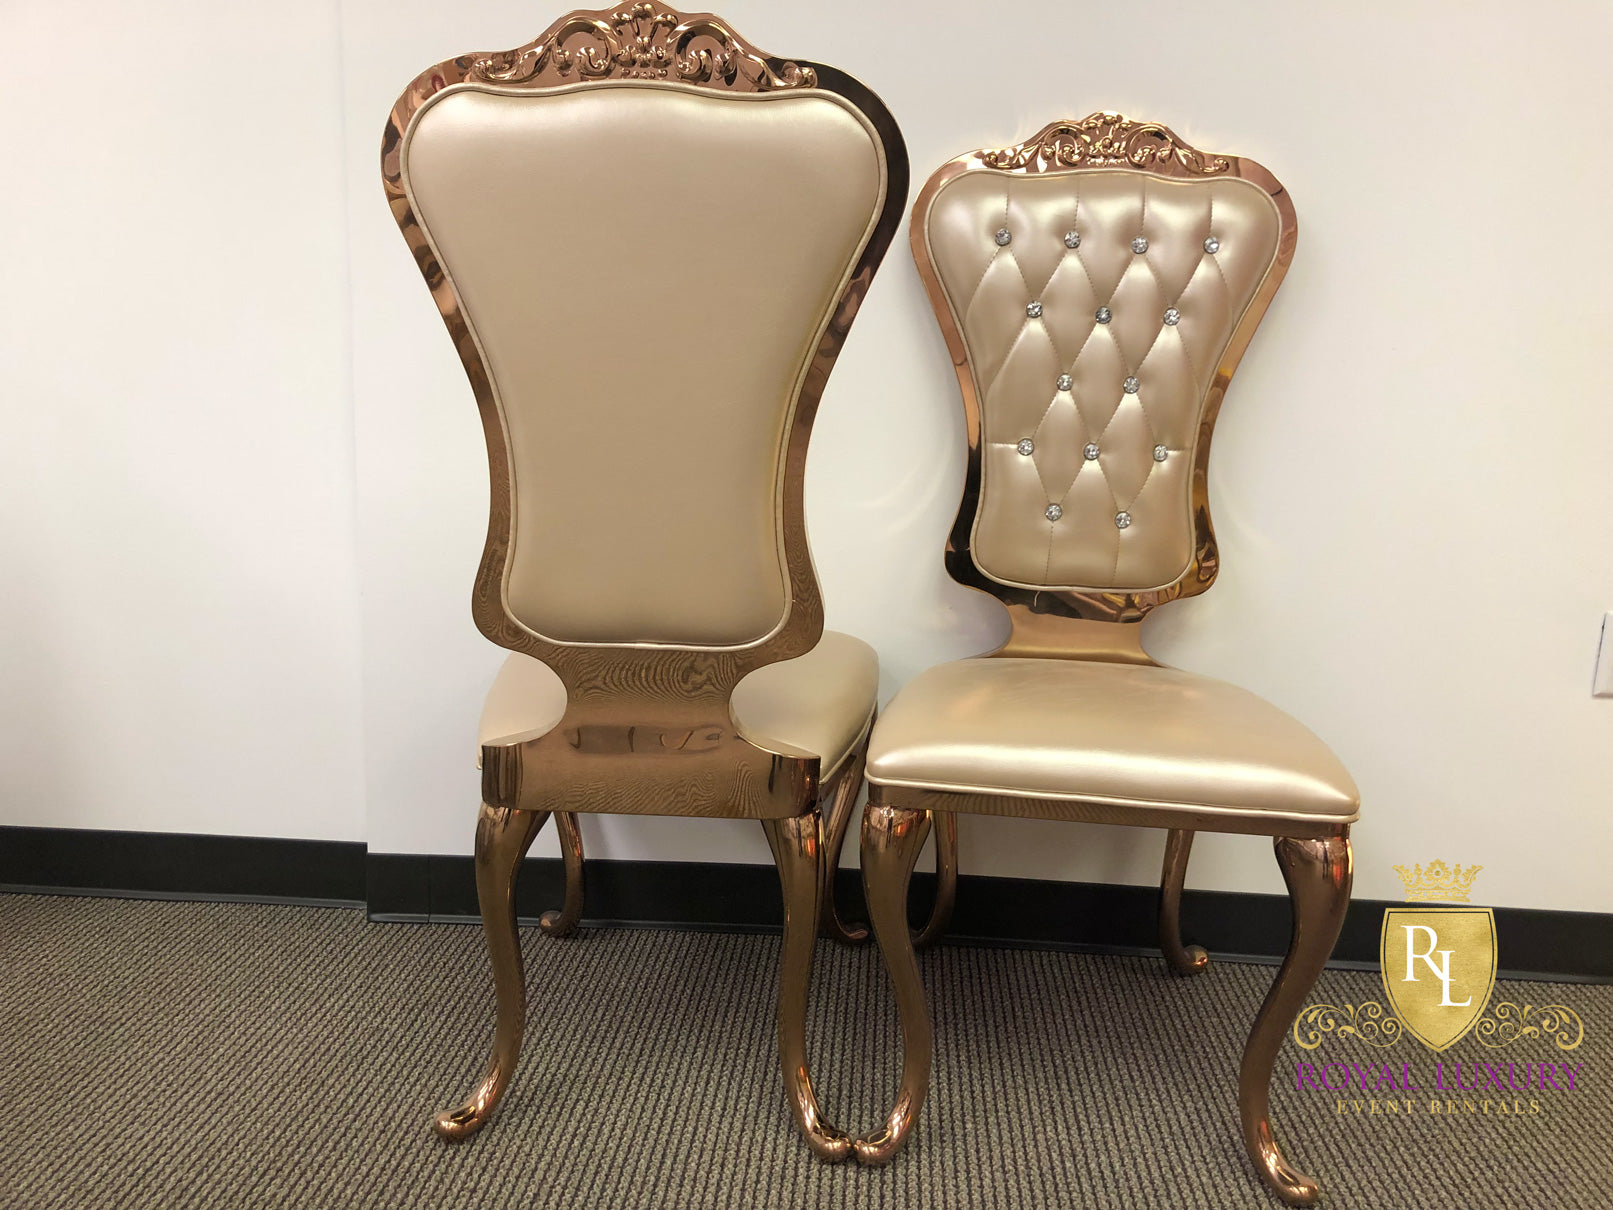 Remarkable Sweetheart Chairs Royal Luxury Events Rentals Gamerscity Chair Design For Home Gamerscityorg